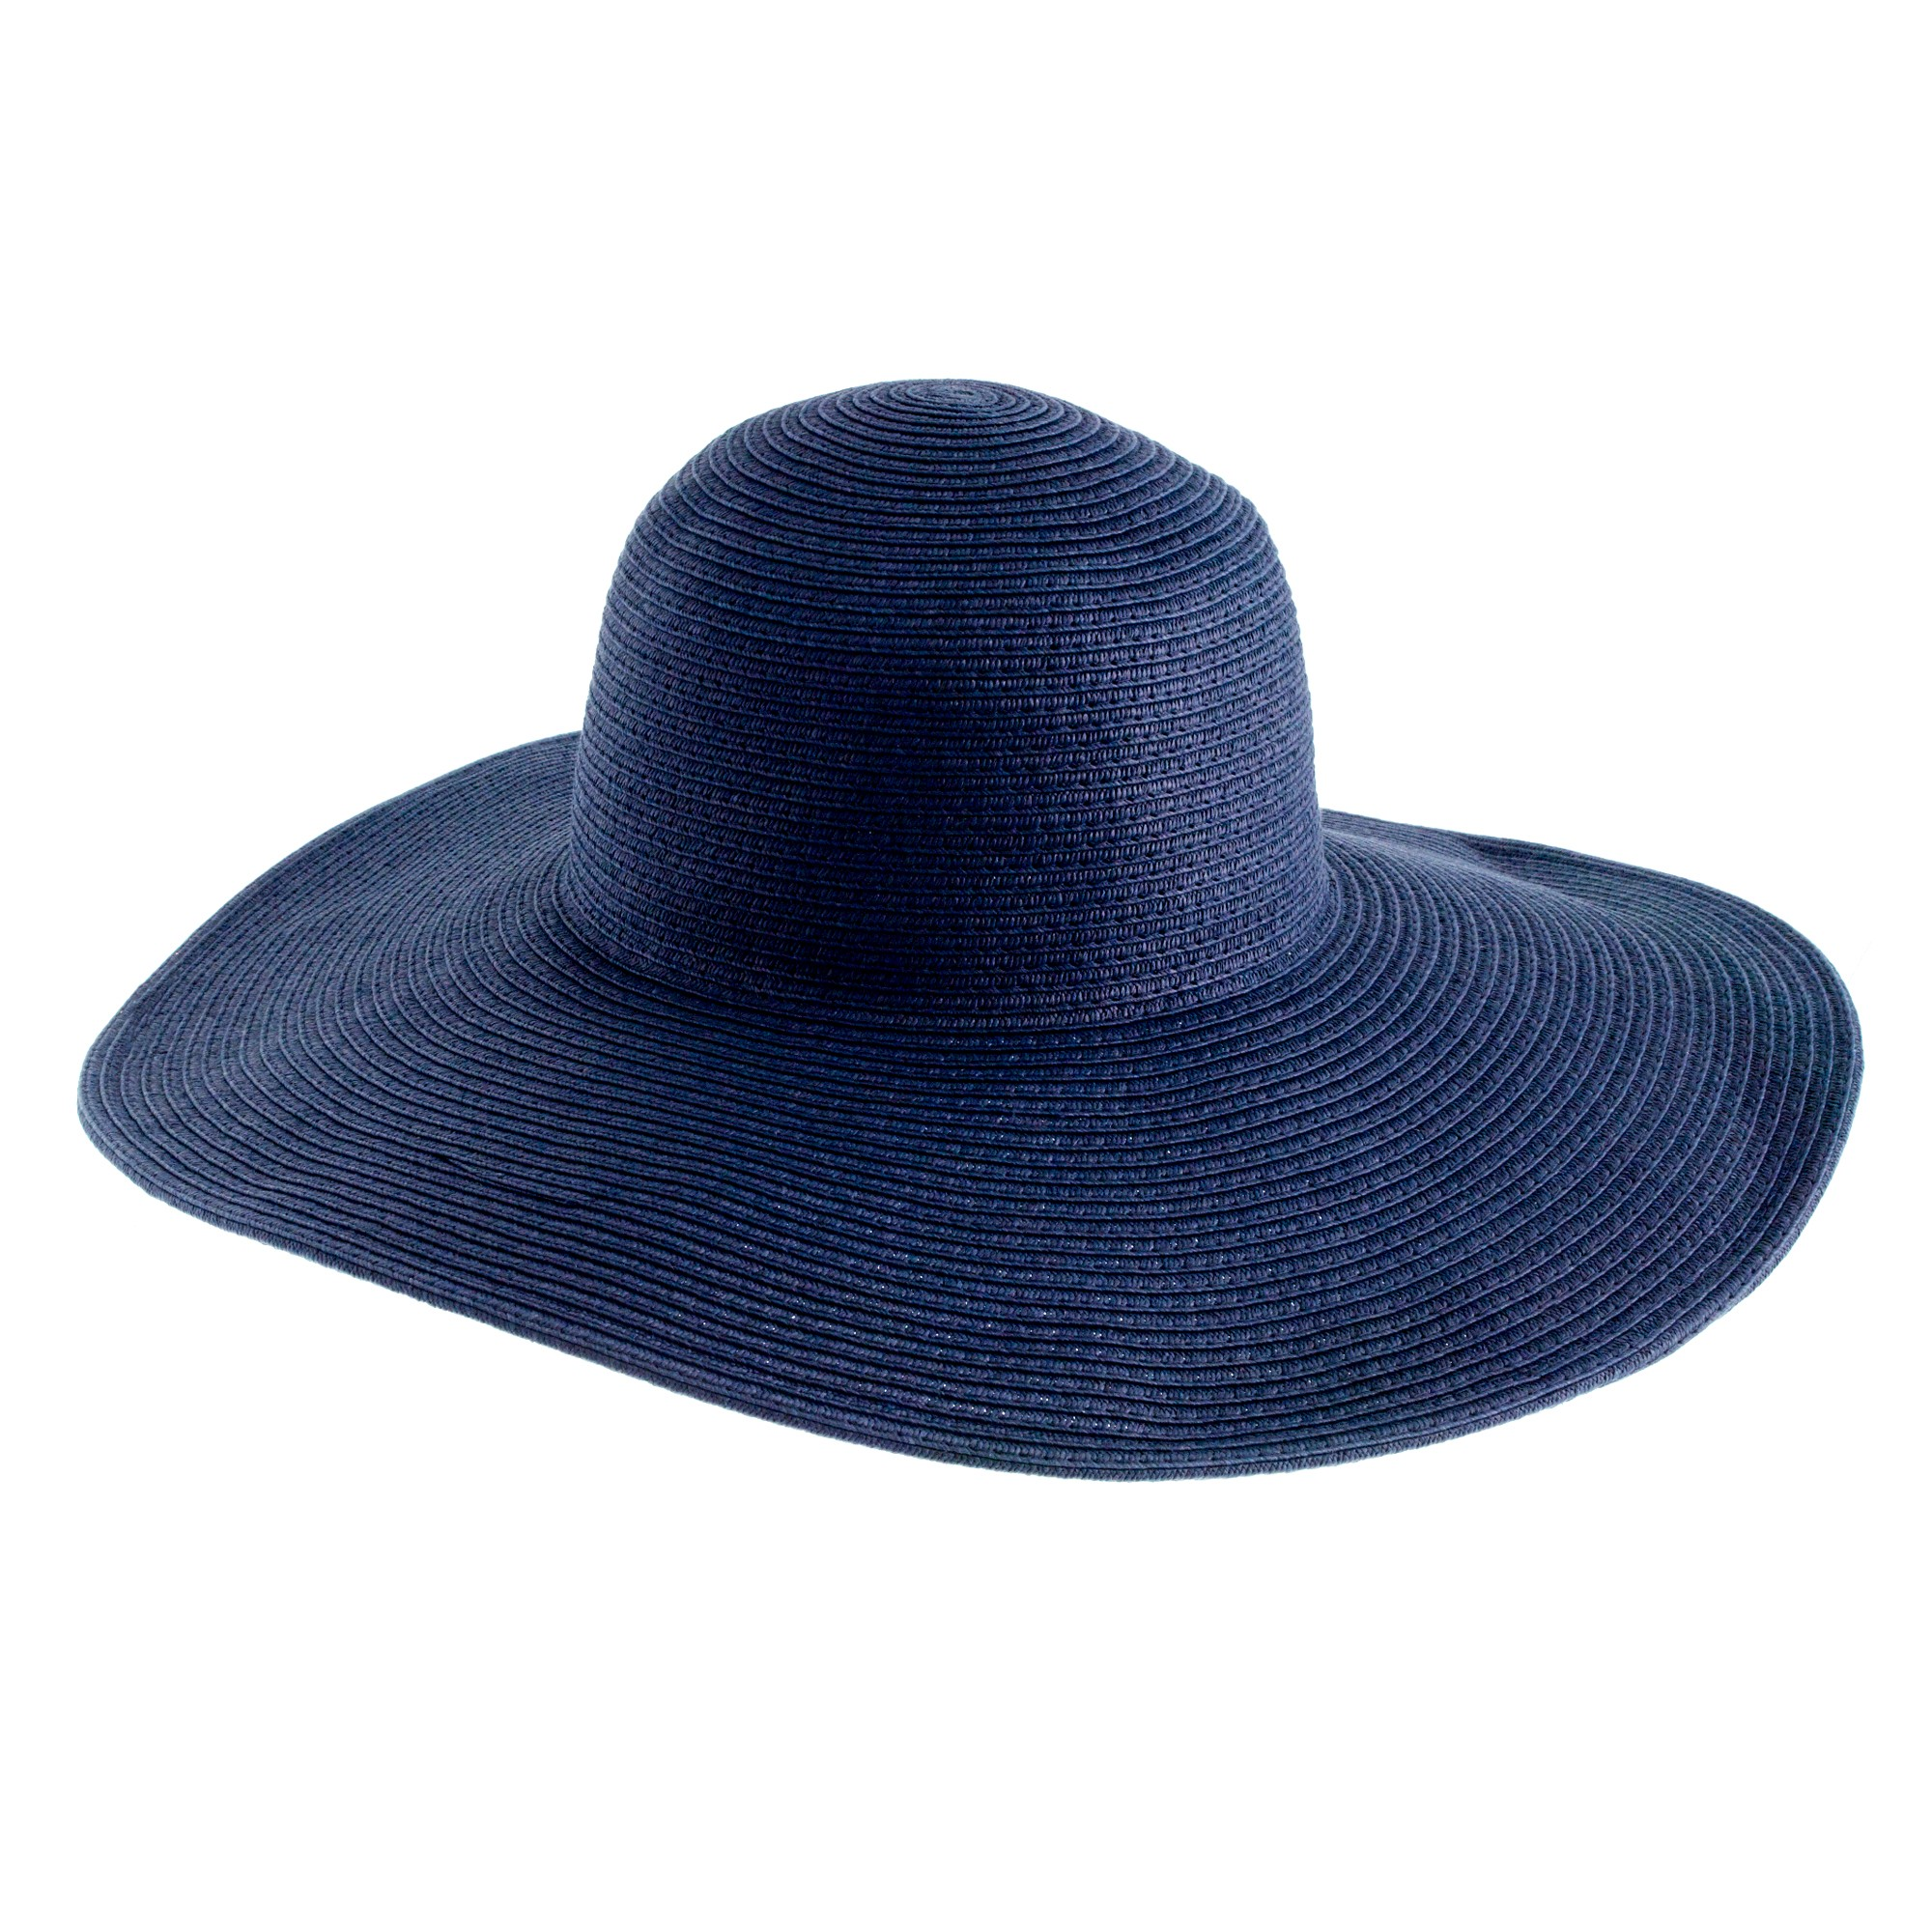 A hat with a mysterious power that provides full protection against the hot midsummer sun.